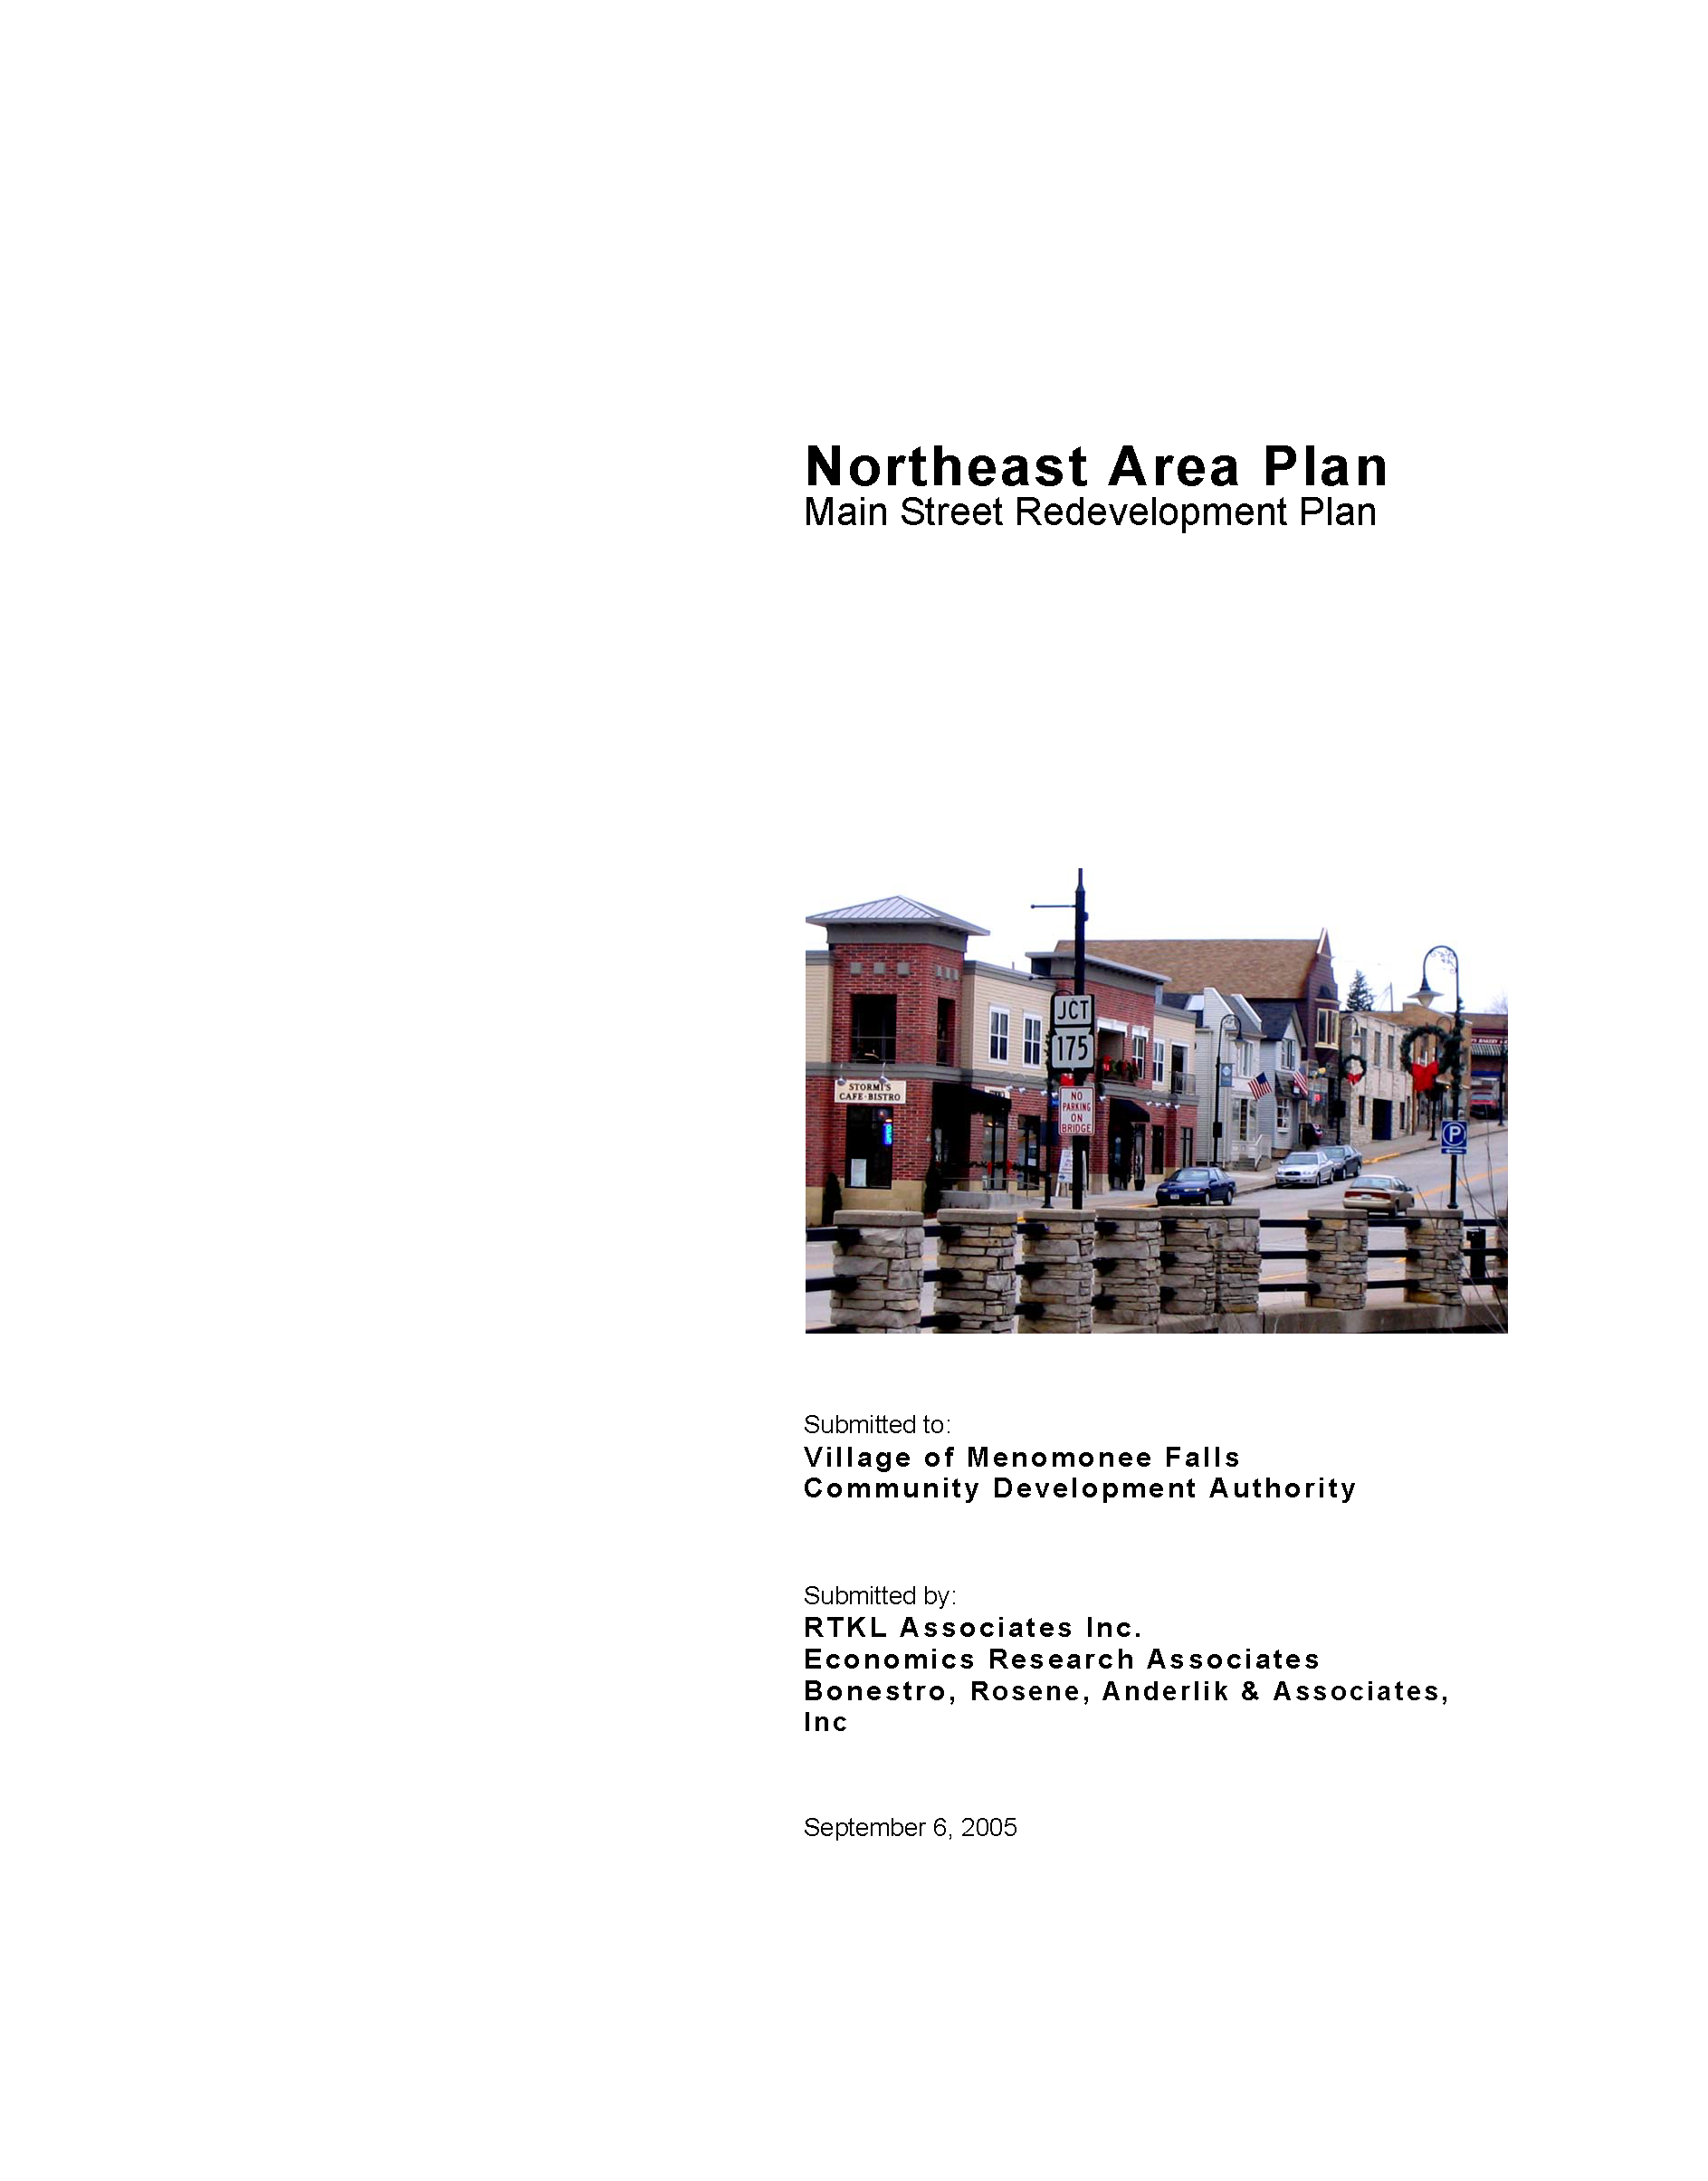 Northeast Area Plan Cover Opens in new window